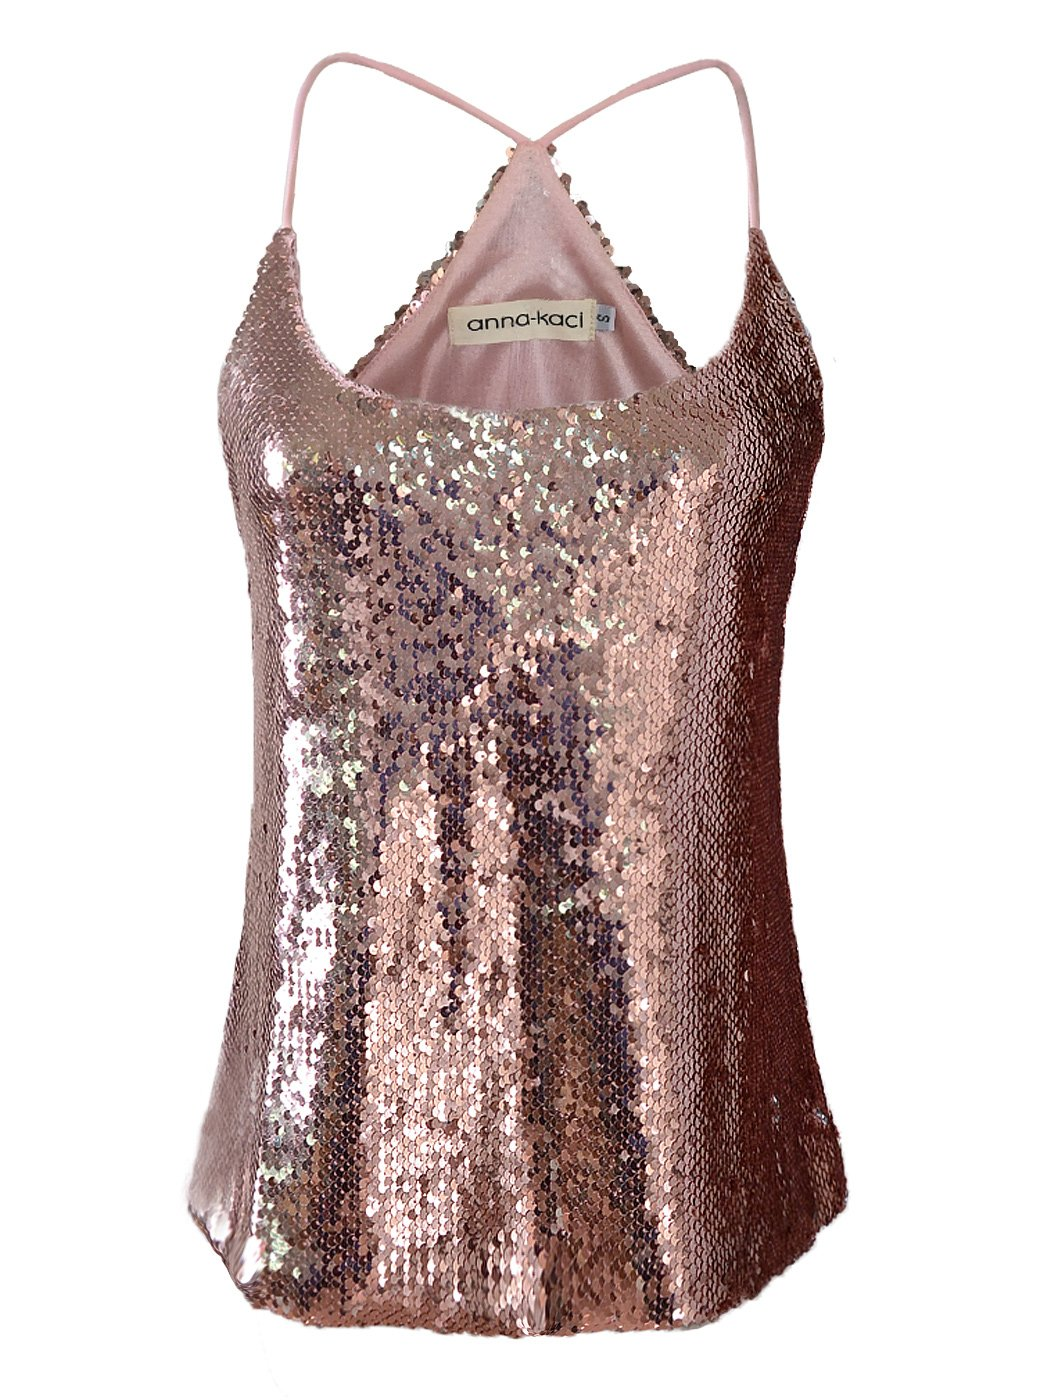 Anna-Kaci Womens All Over Shiny Sequin Spaghetti Strap Vest Tank Top, Rose Gold, X-Large